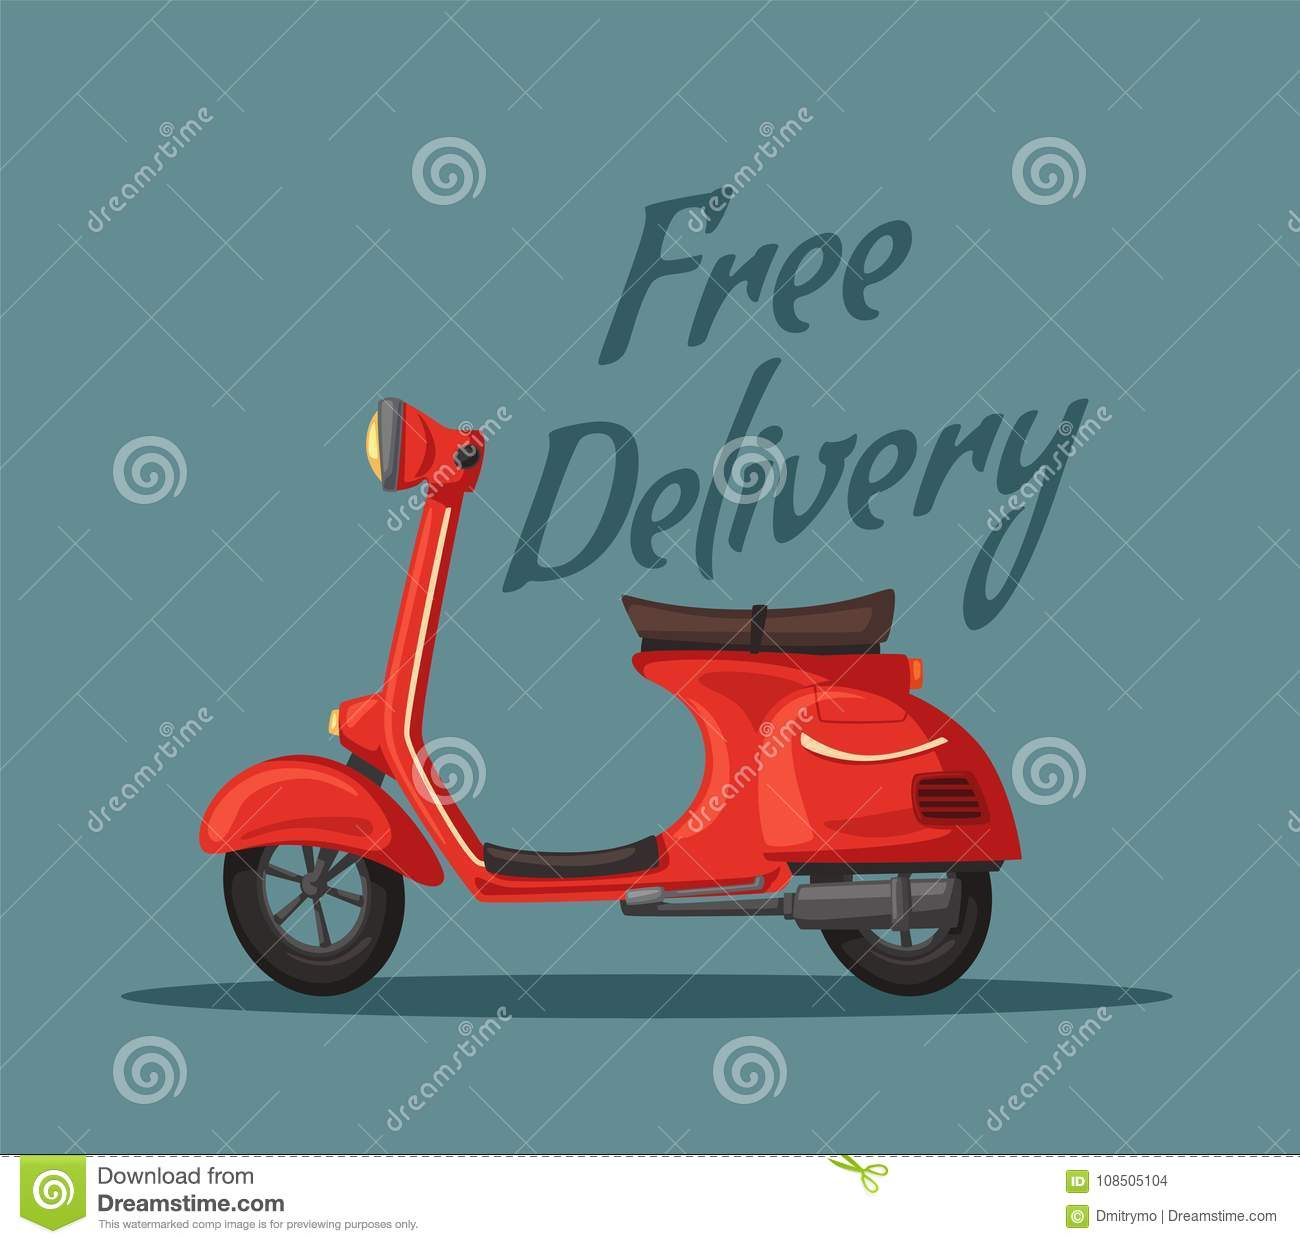 fast and free delivery vector cartoon illustration food service retro scooter stock vector illustration of food helmet 108505104 https www dreamstime com fast free delivery vector cartoon illustration food service retro scooter vintage style red bike banners posters image108505104